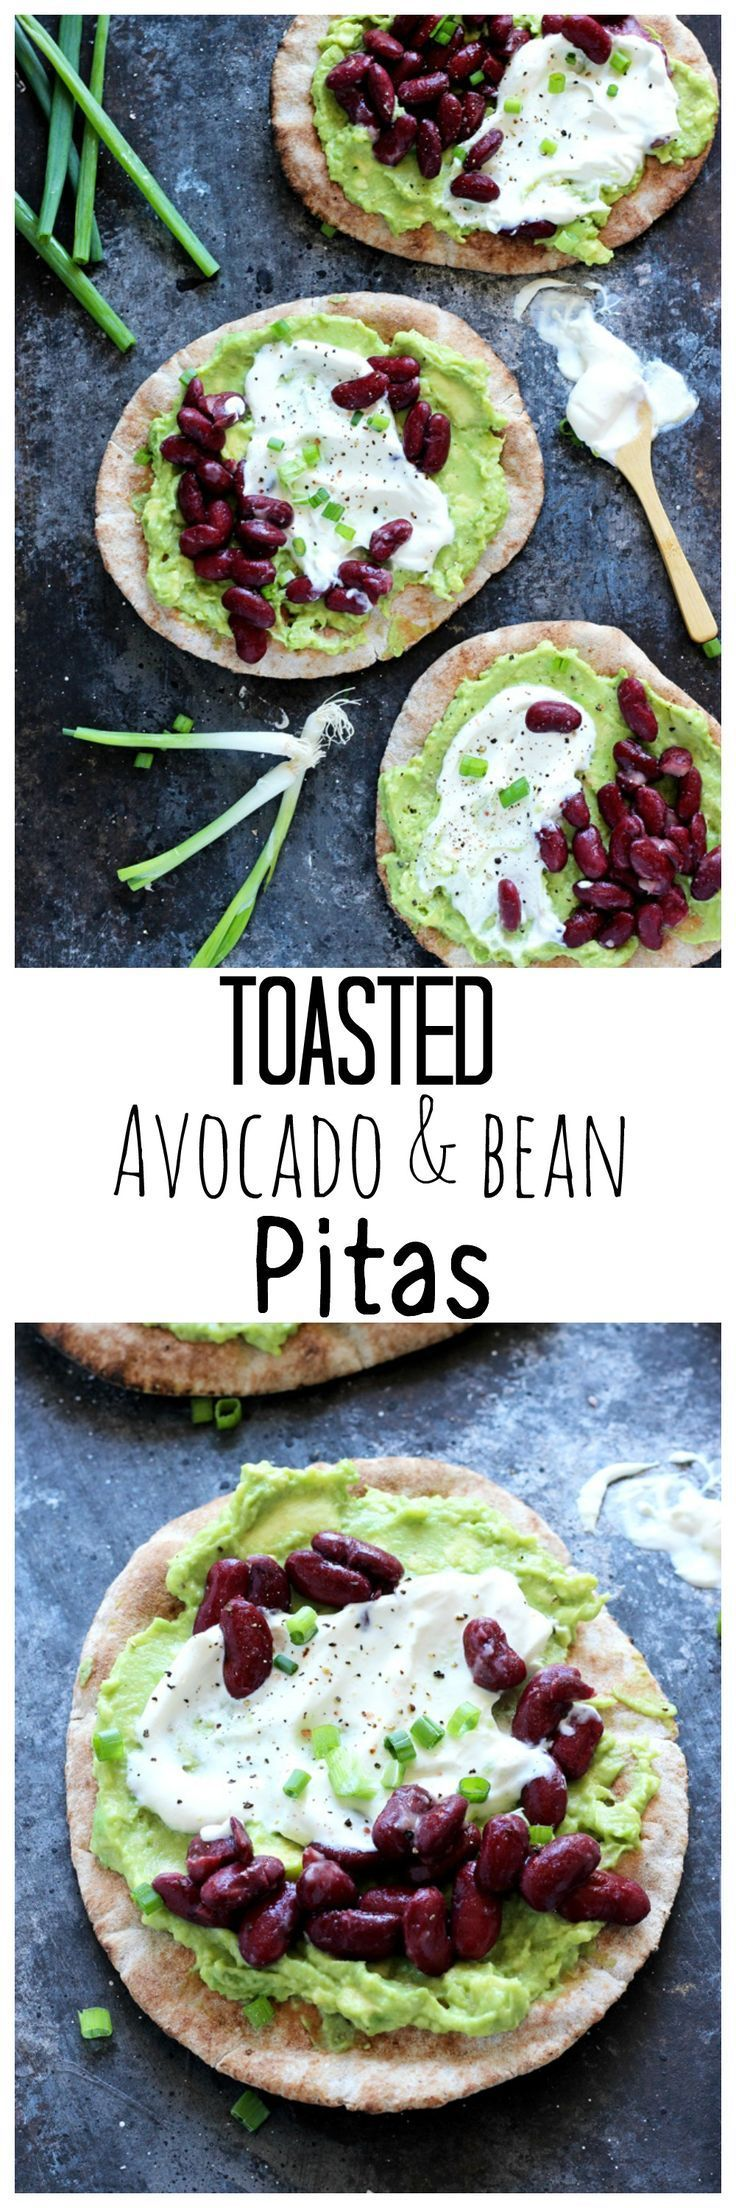 Toasted Avocado and Bean Pitas are a great healthy lunch to grab and go! This easy to make meal is done in minutes. #lunch #eatclean